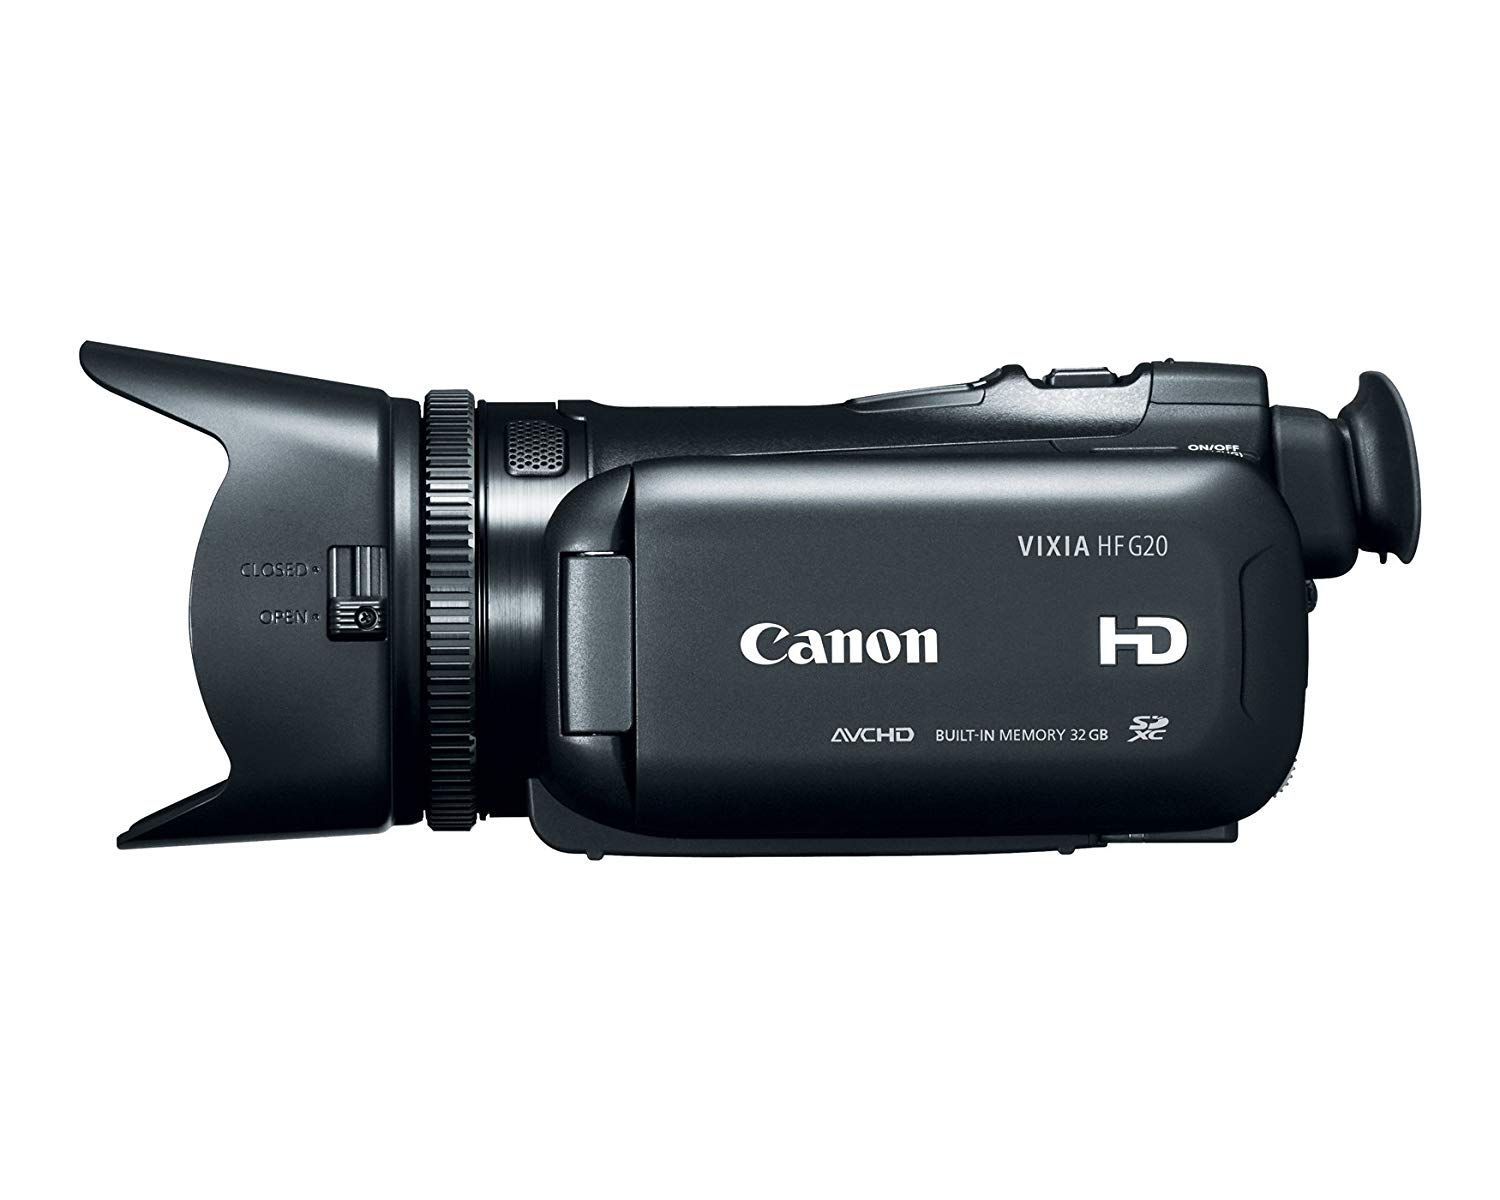 Canon VIXIA HF G20 Camcorder with 10x HD Video Lens (30.4mm-304mm), 3.5'' Touchscreen LCD, HD CMOS Pro and 32GB Internal Flash Memory (Renewed) by Canon